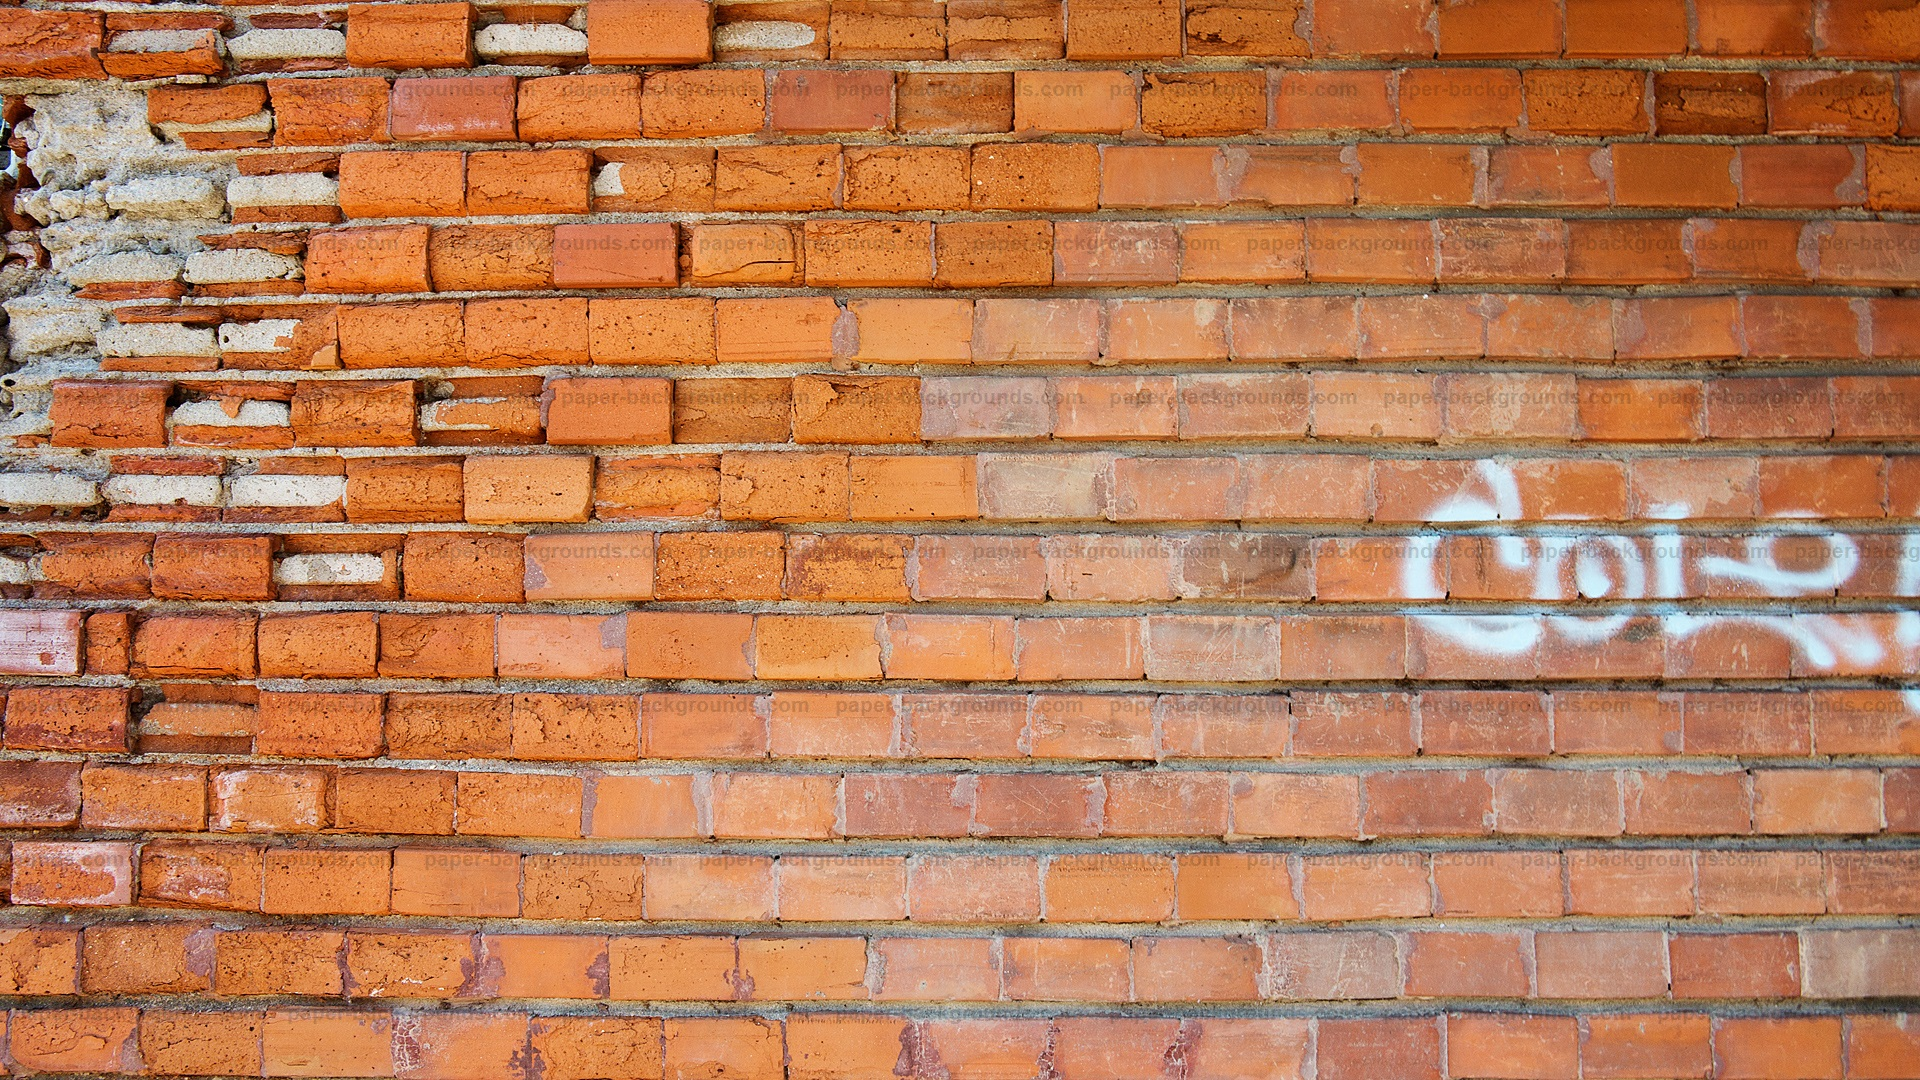 Paper Backgrounds old brick wall background hd 1920x1080